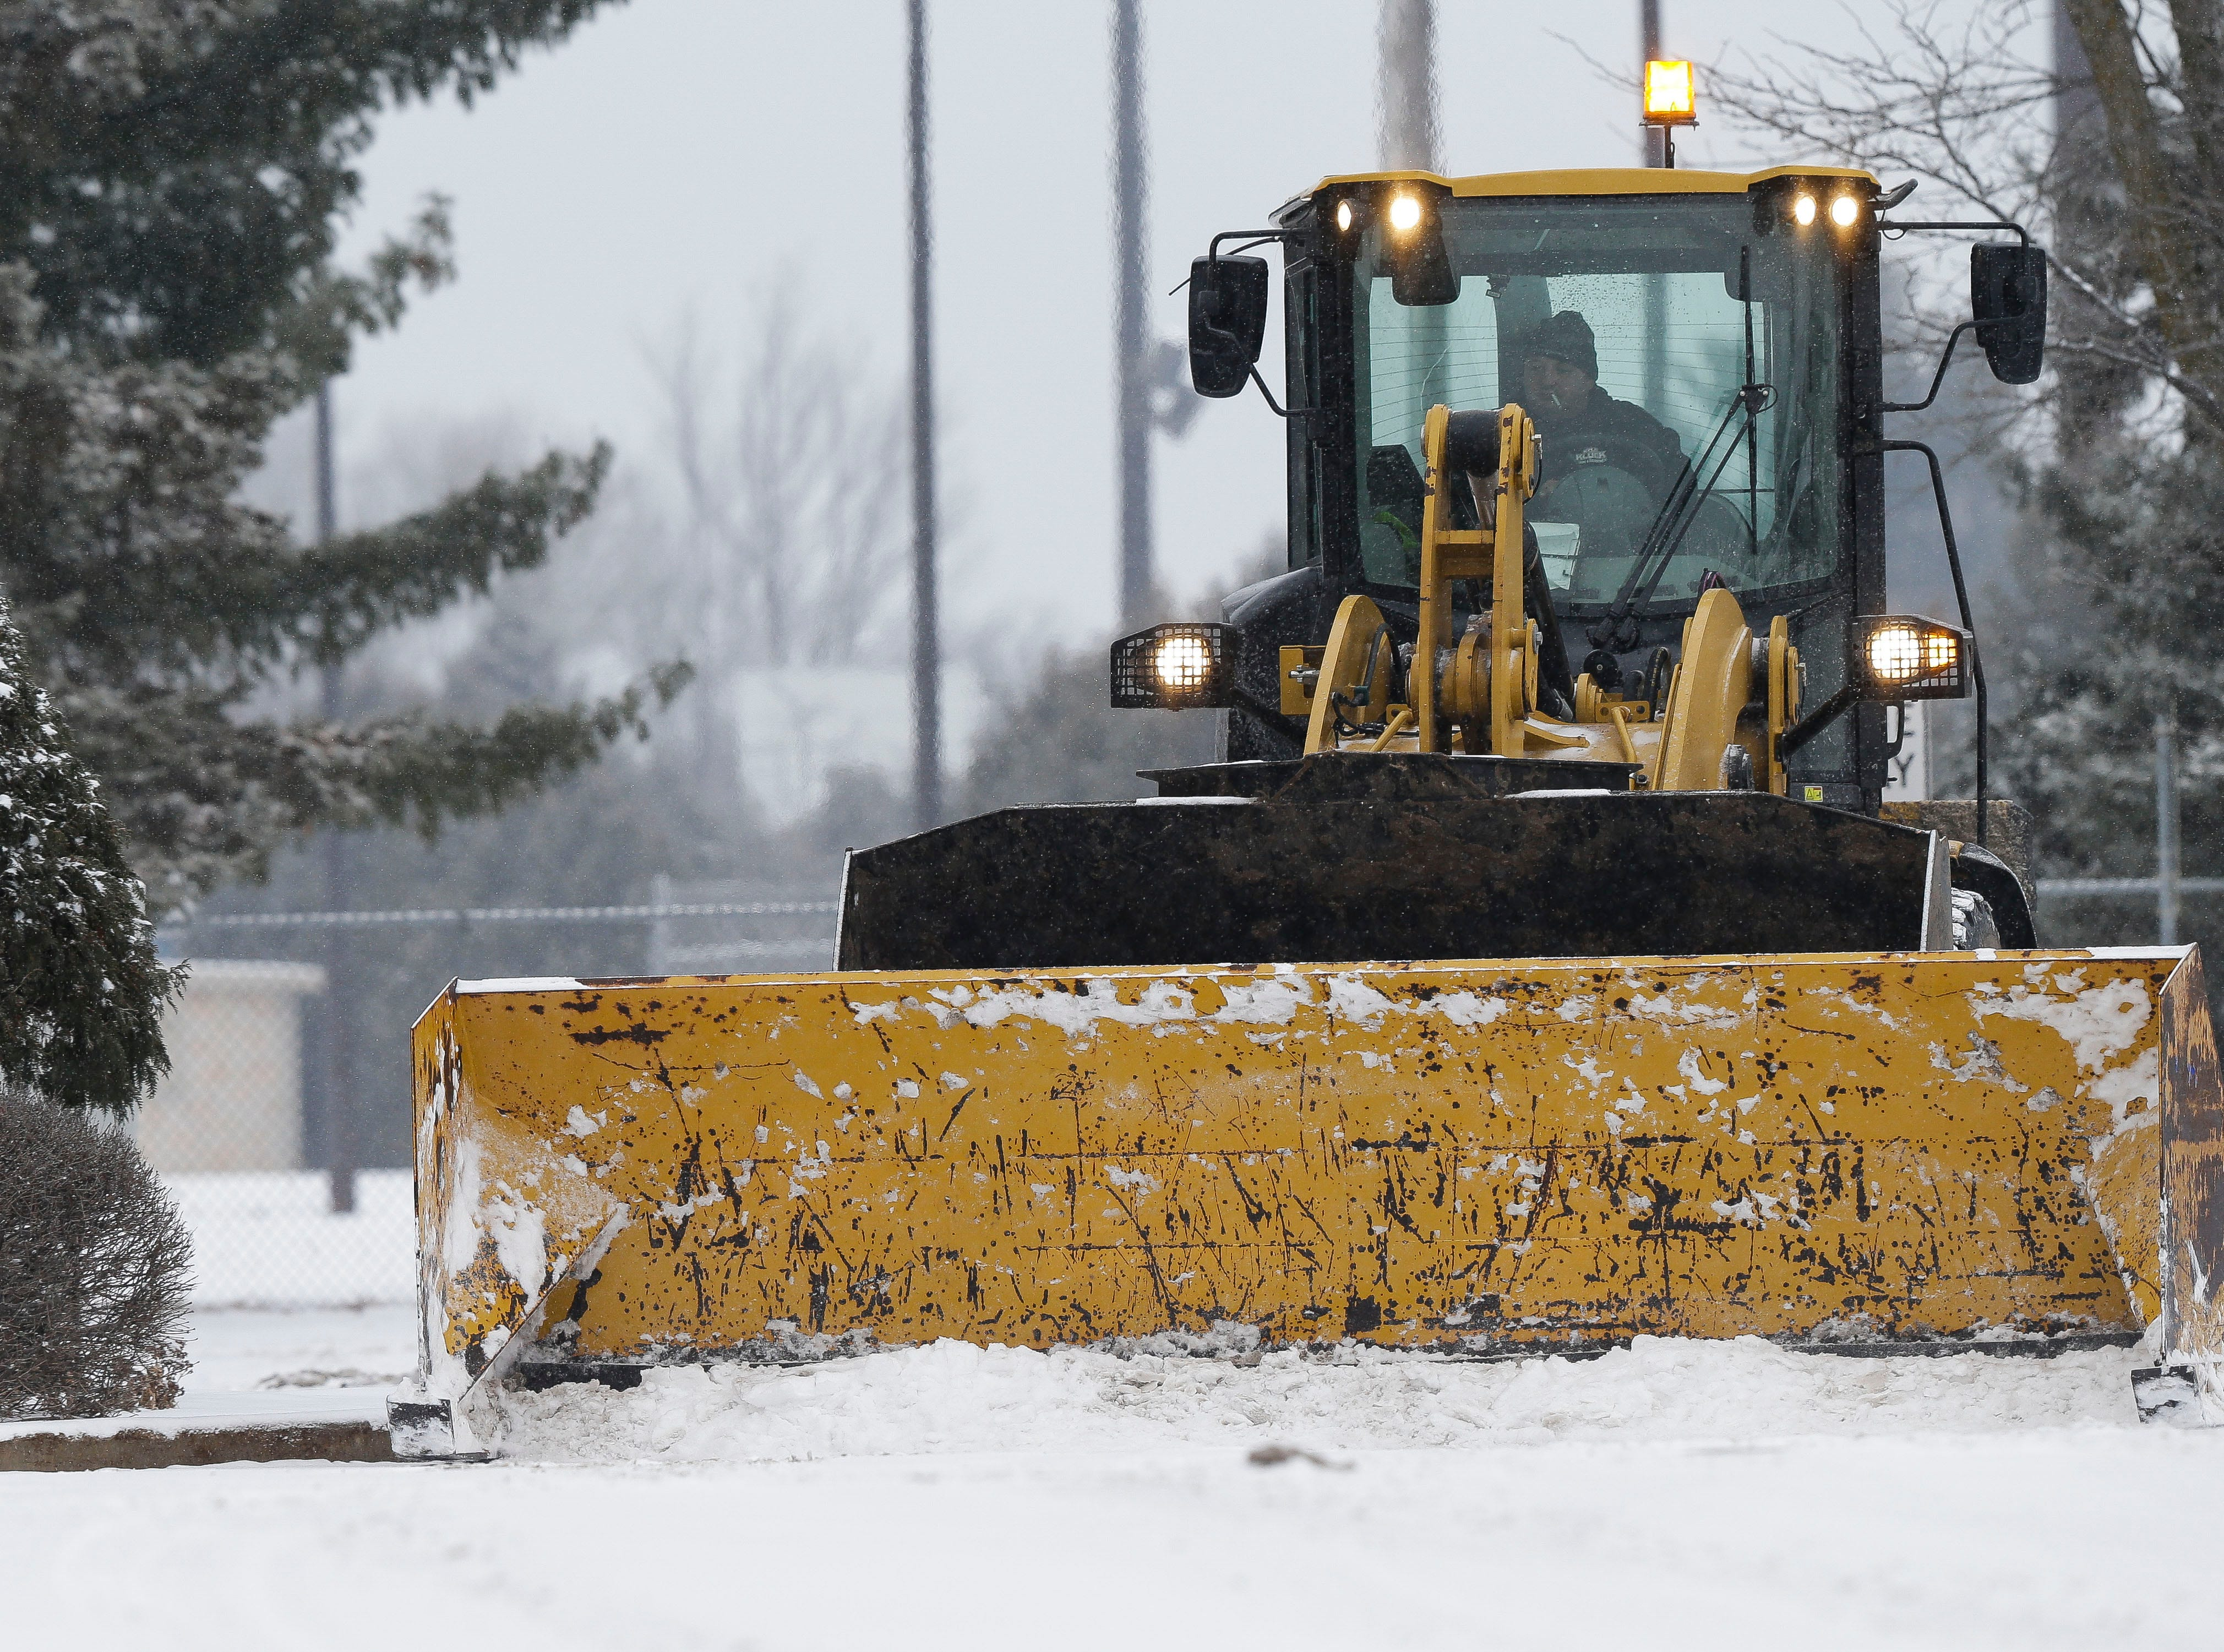 A snow plow clears a parking lot on Tuesday, January 22, 2019, in Stevens Point, Wis. A snow storm rolled through the area on Tuesday and is expected to drop 6-8 inches of snow.Tork Mason/USA TODAY NETWORK-Wisconsin